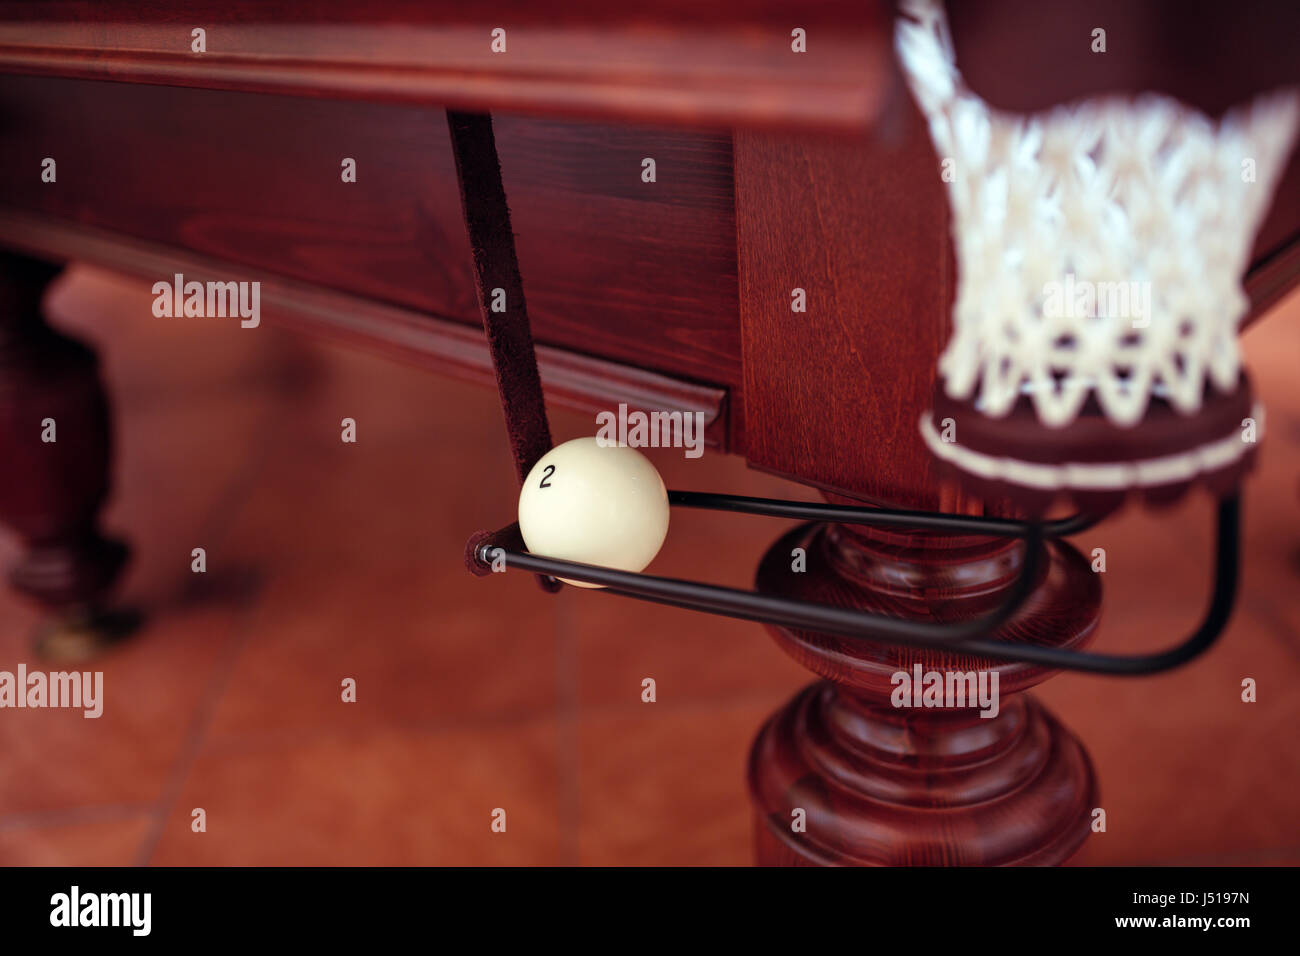 Billiard ball under the pool table in mesh - Stock Image